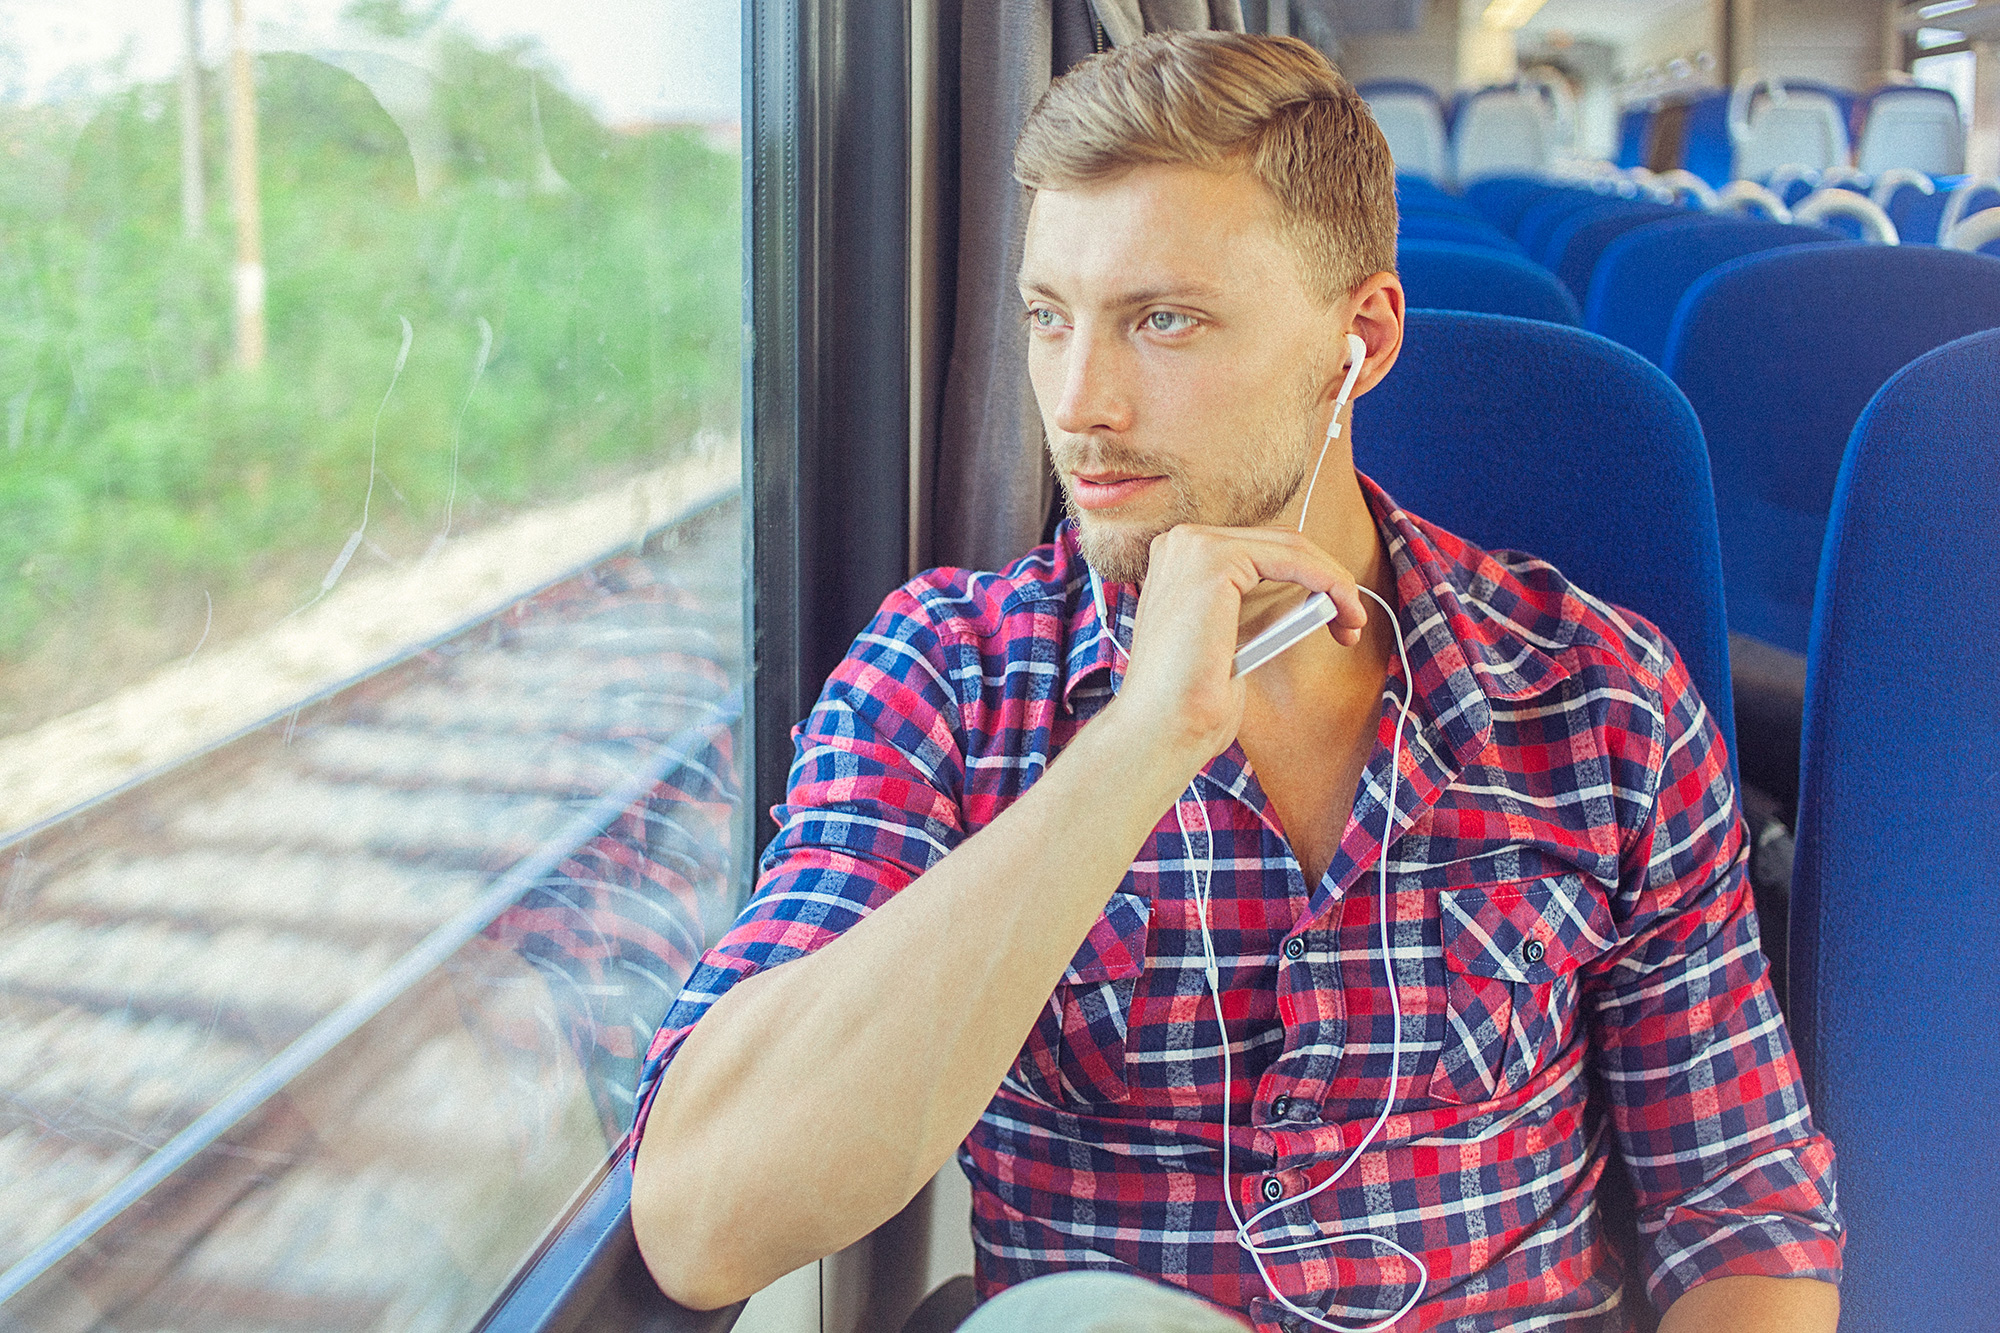 man-practising-mindfulness-on-a-train.jpg